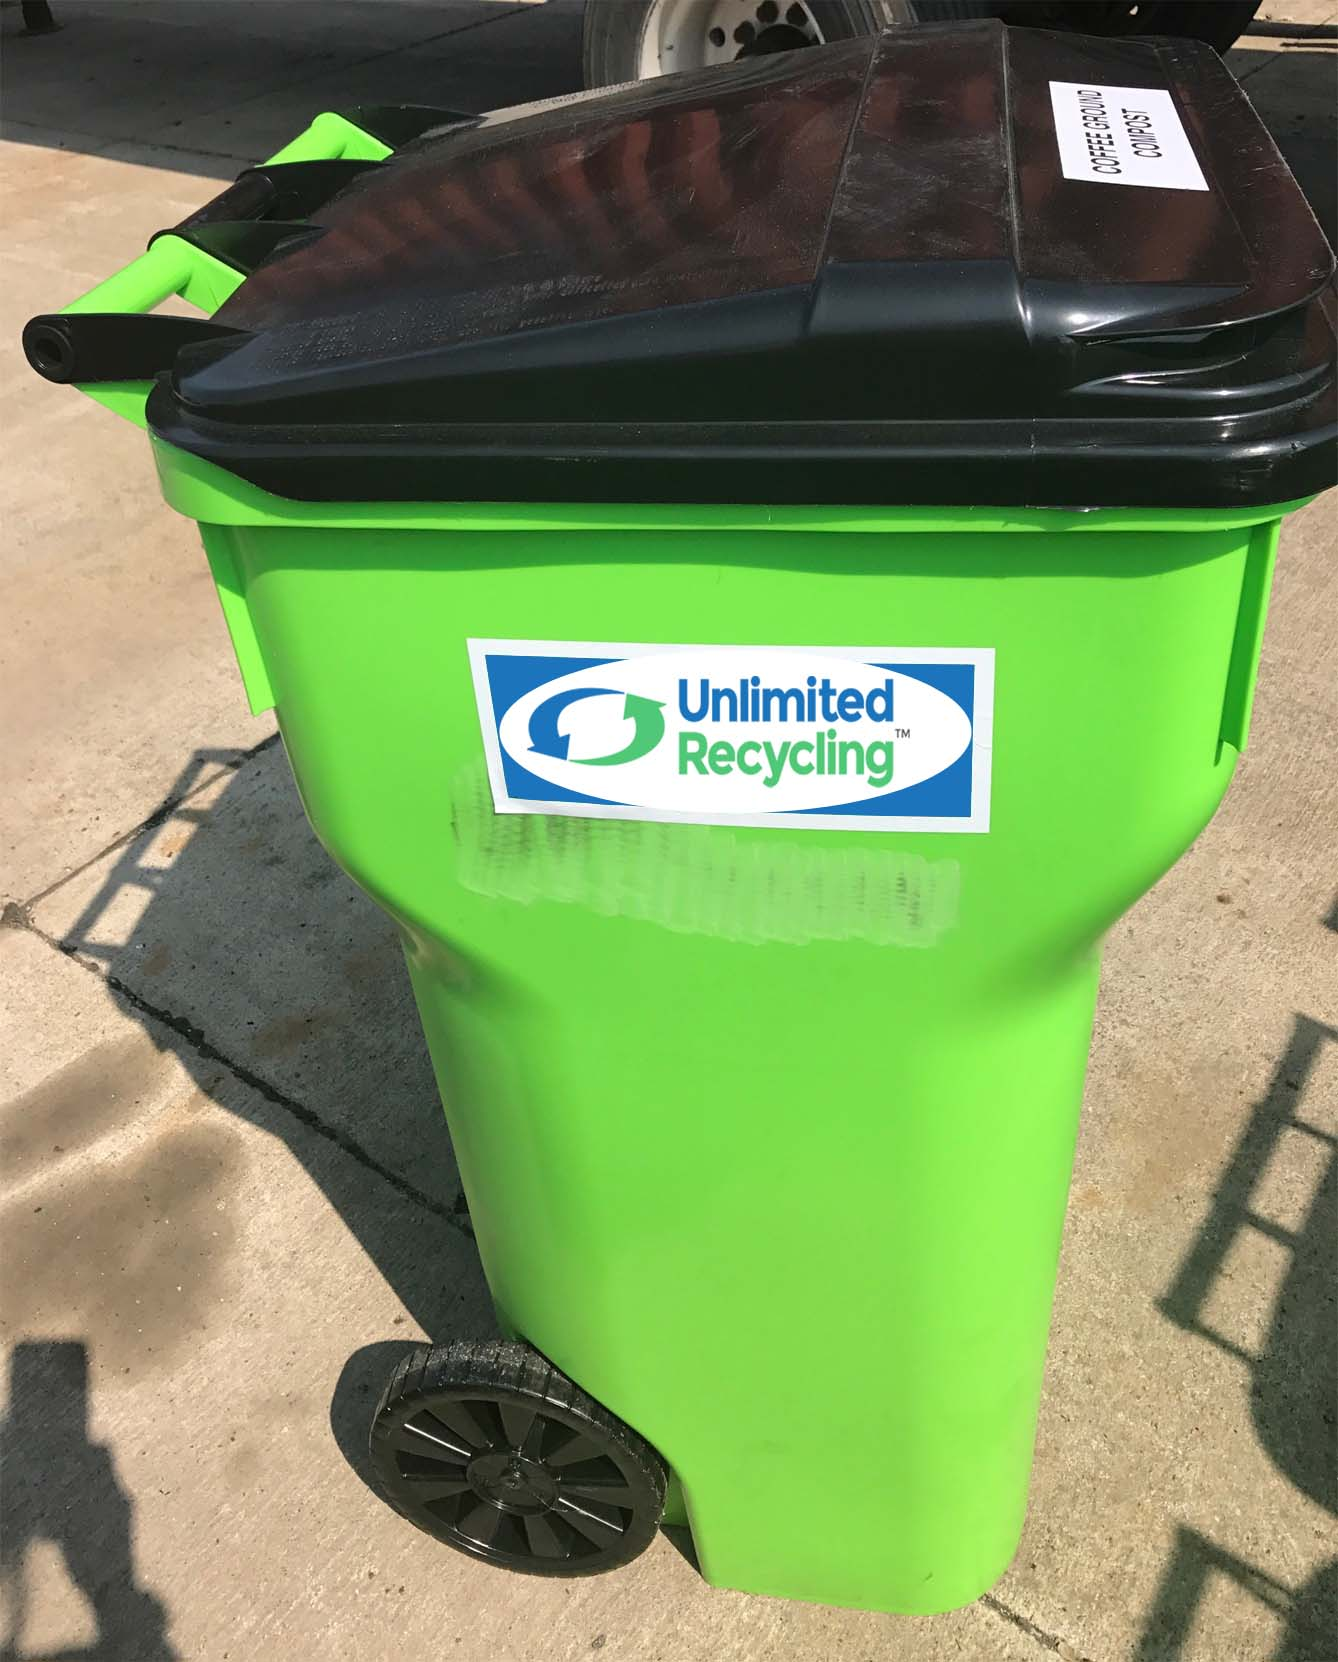 Food composting service in Metro Detroit Michigan